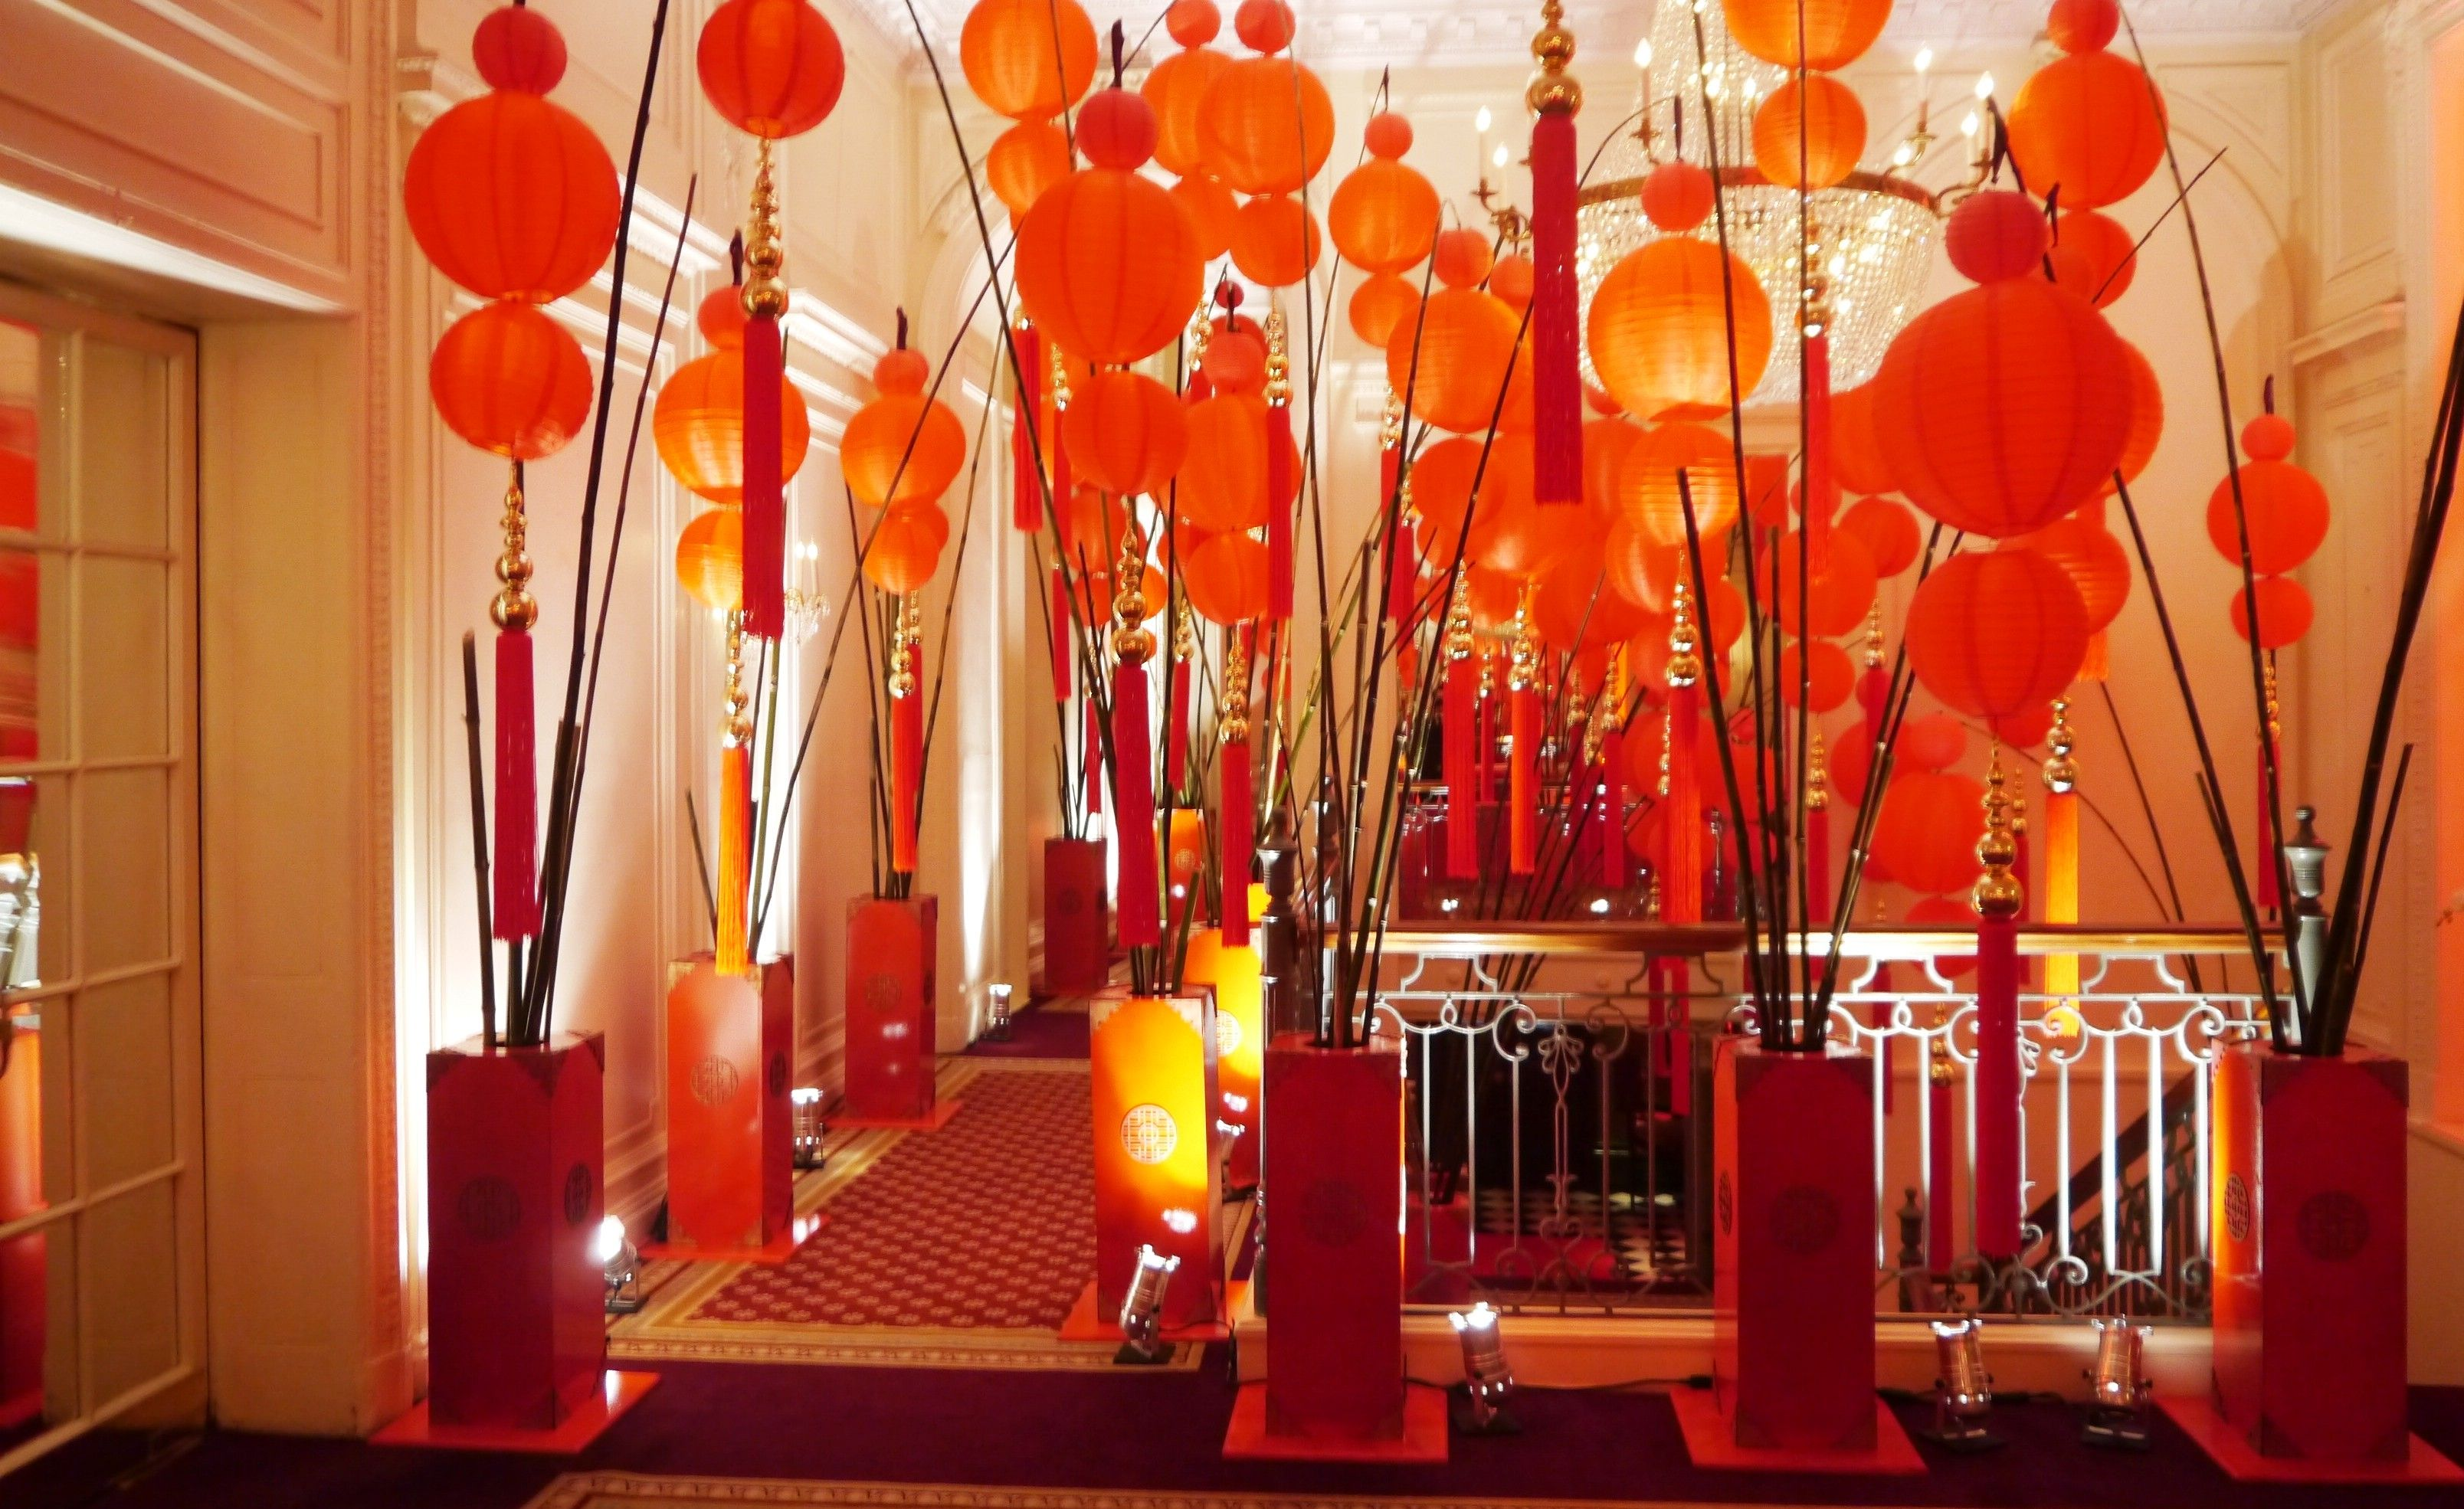 Ballroom Entrance for Chinese Year Party 2013 | Trang trí ...